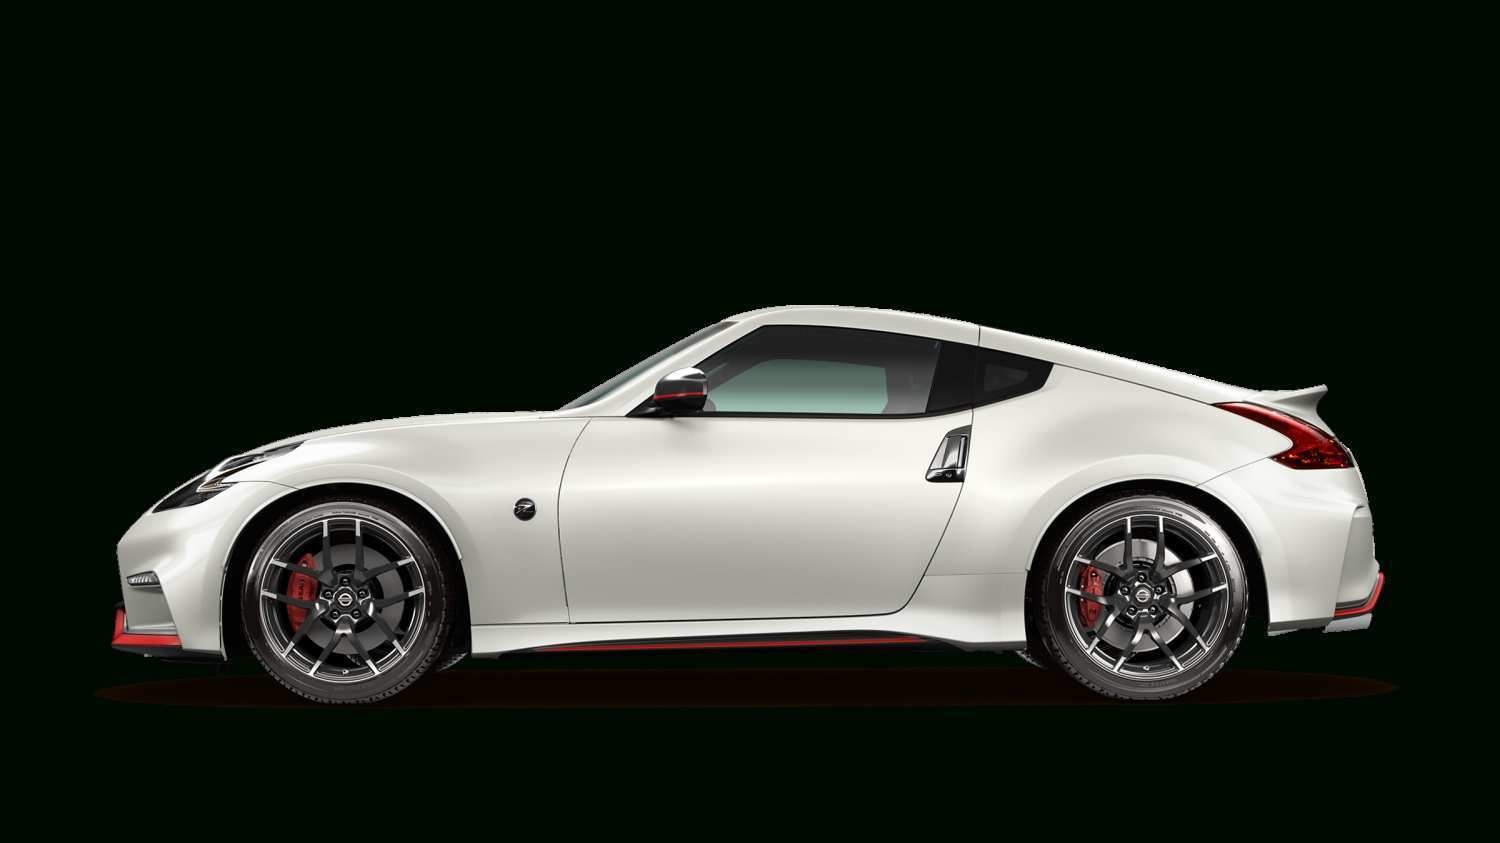 68 New 2019 Nissan Z Redesign Price And Review Exterior and Interior with 2019 Nissan Z Redesign Price And Review